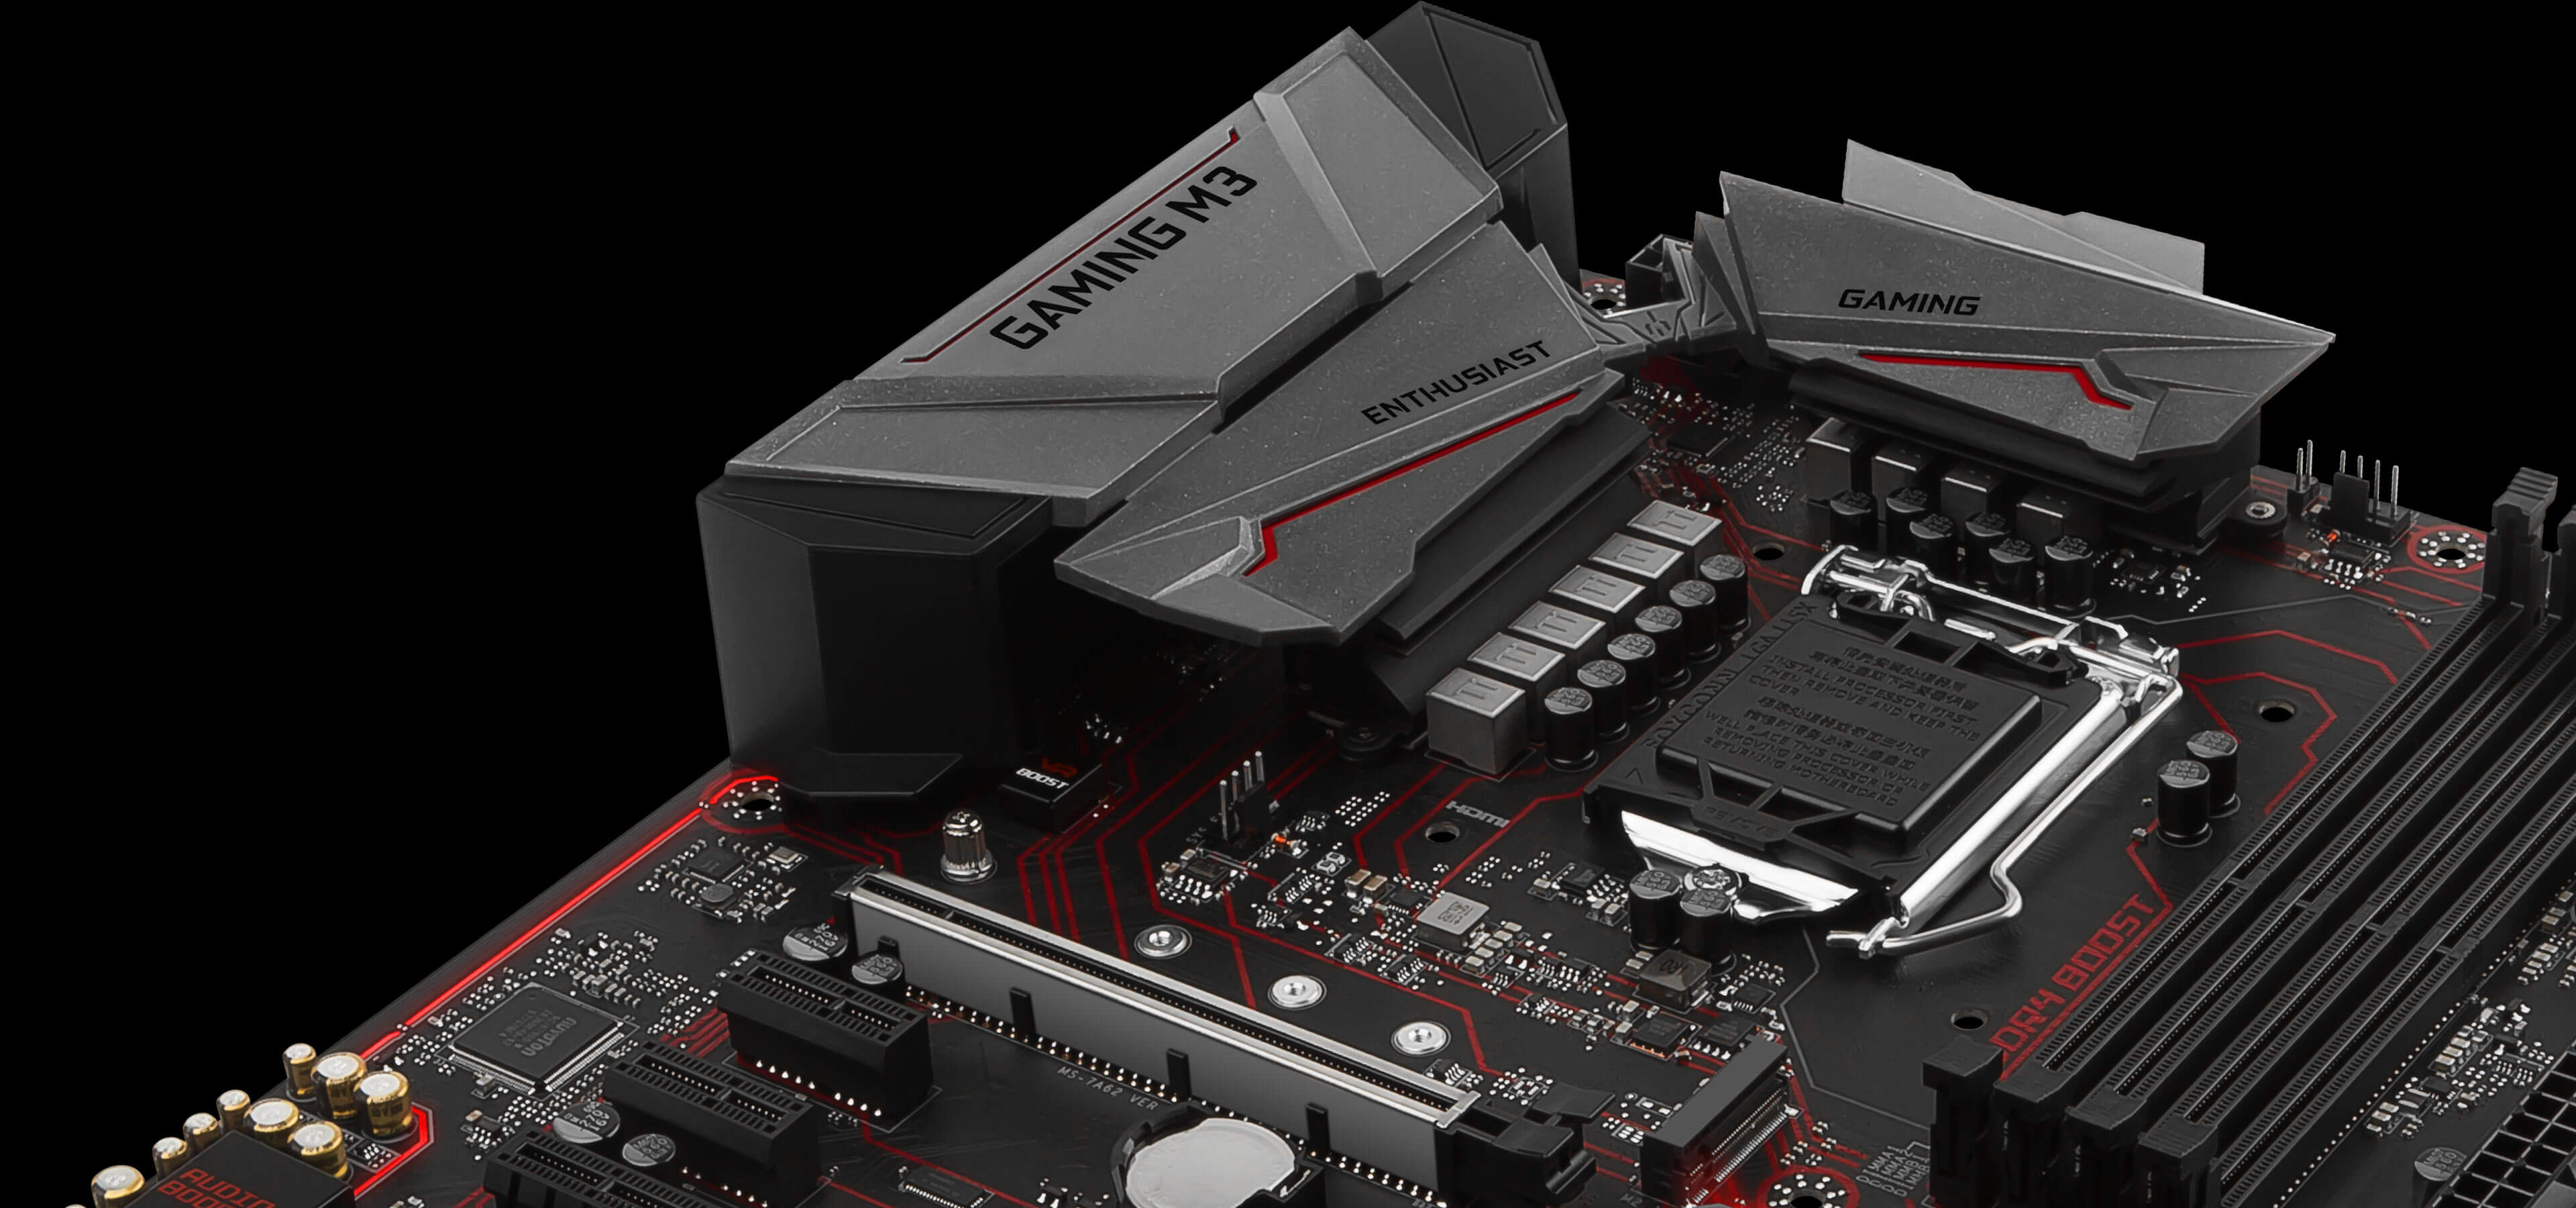 H270 GAMING M3 | Motherboard - The world leader in